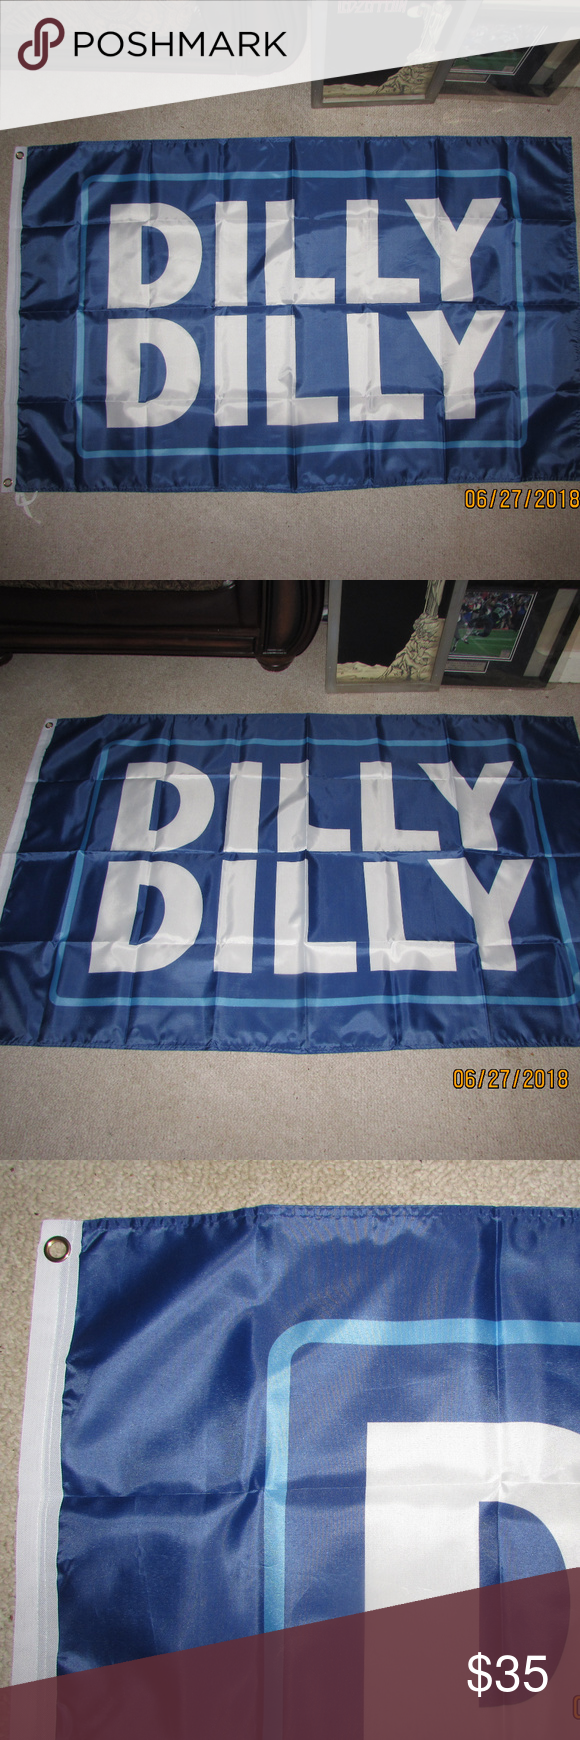 Dilly Dilly 3x5 Feet Flag Banner Bud Beer Misery Nwt